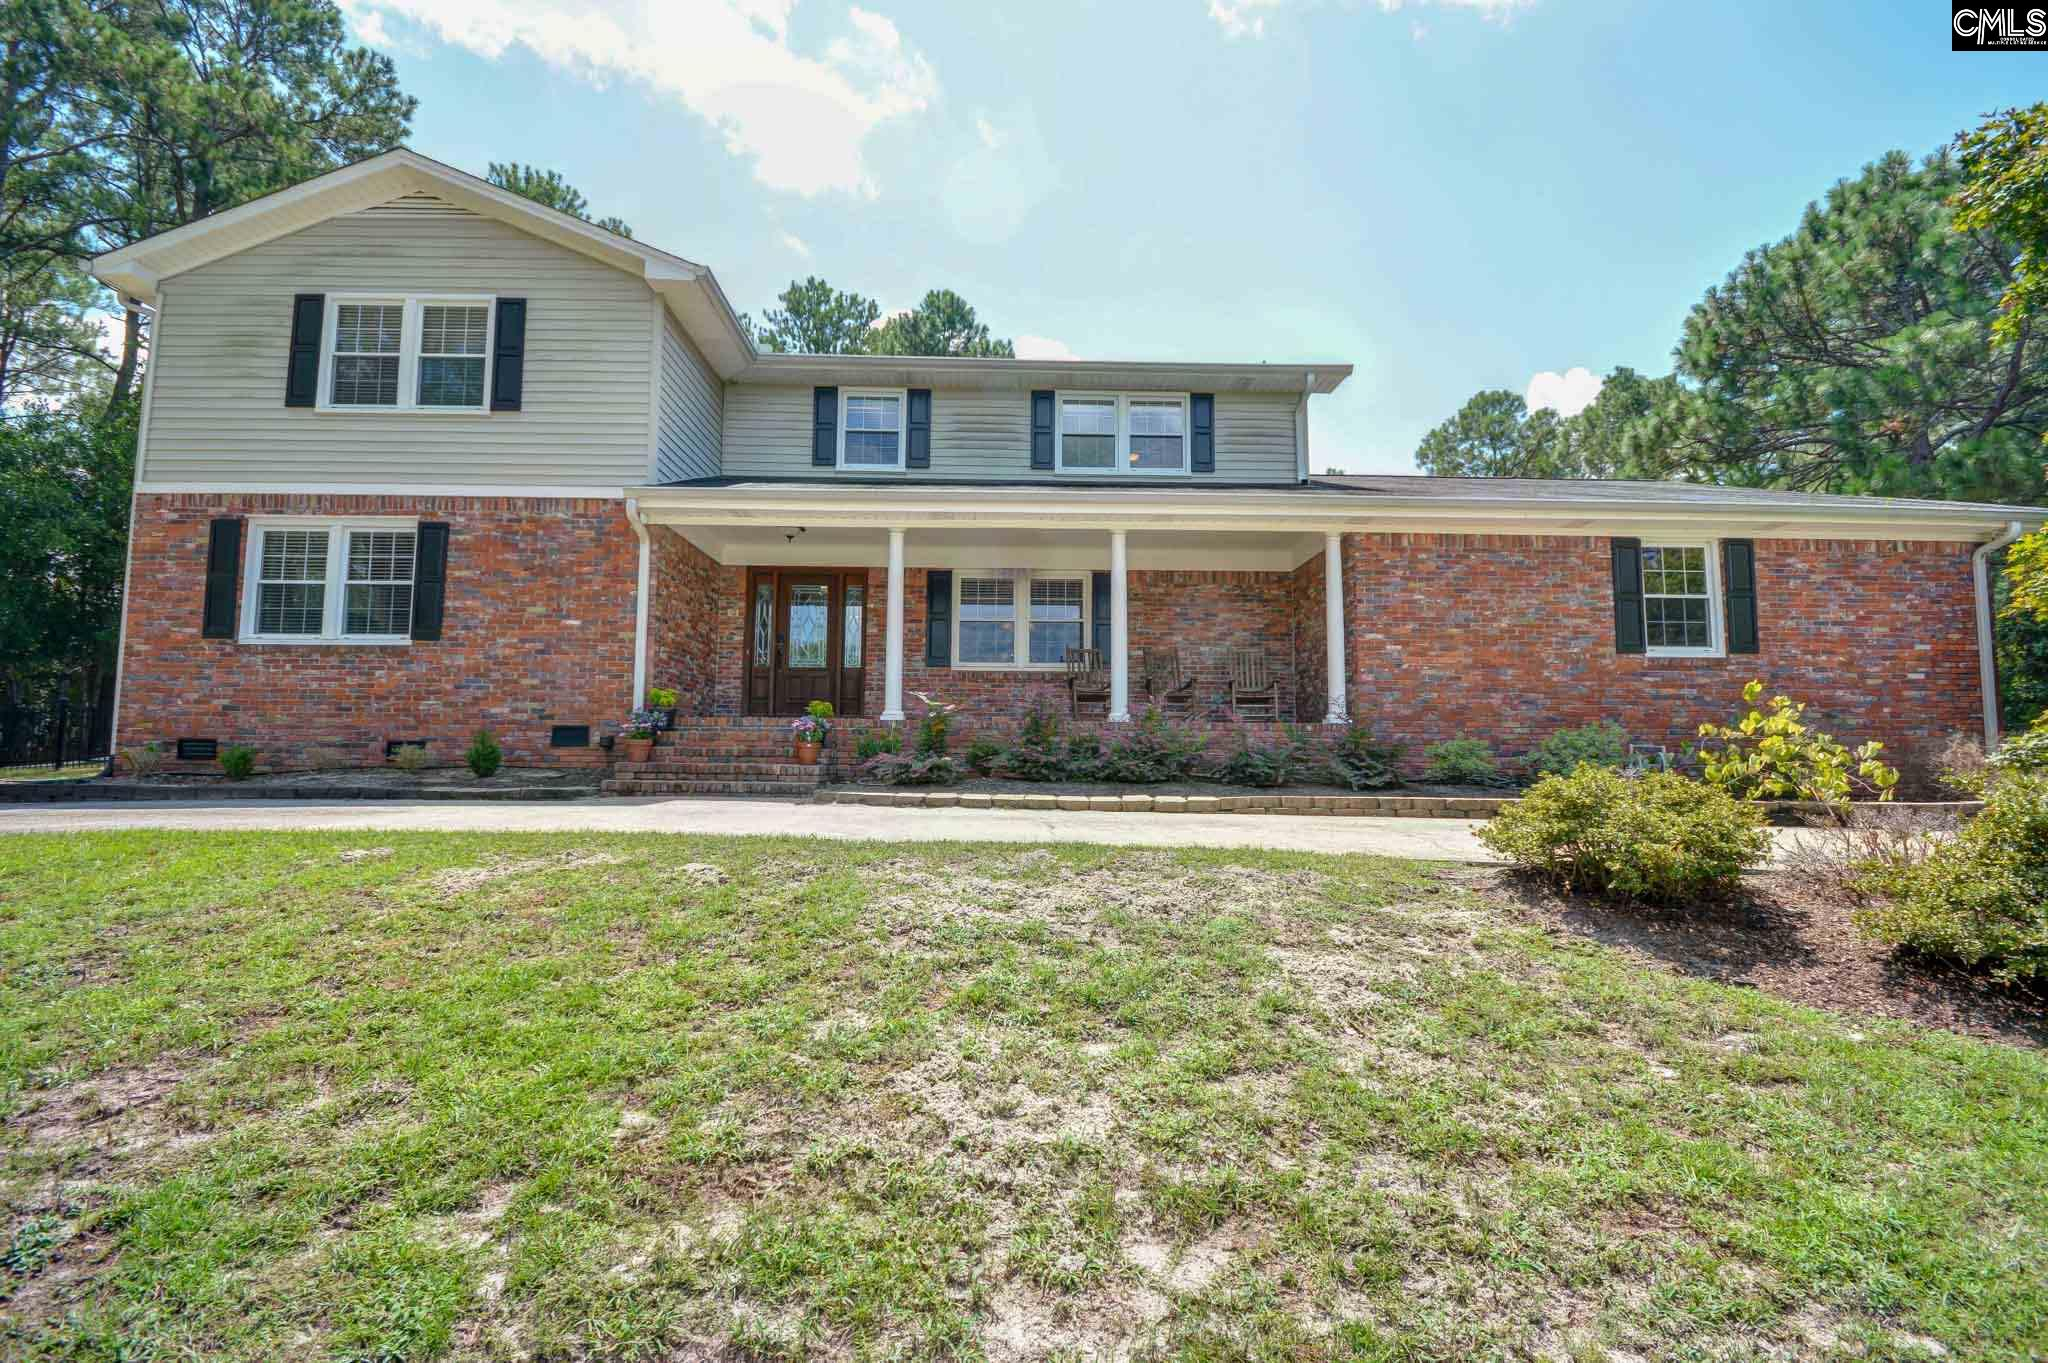 32 Bent Ridge Columbia, SC 29223-6004